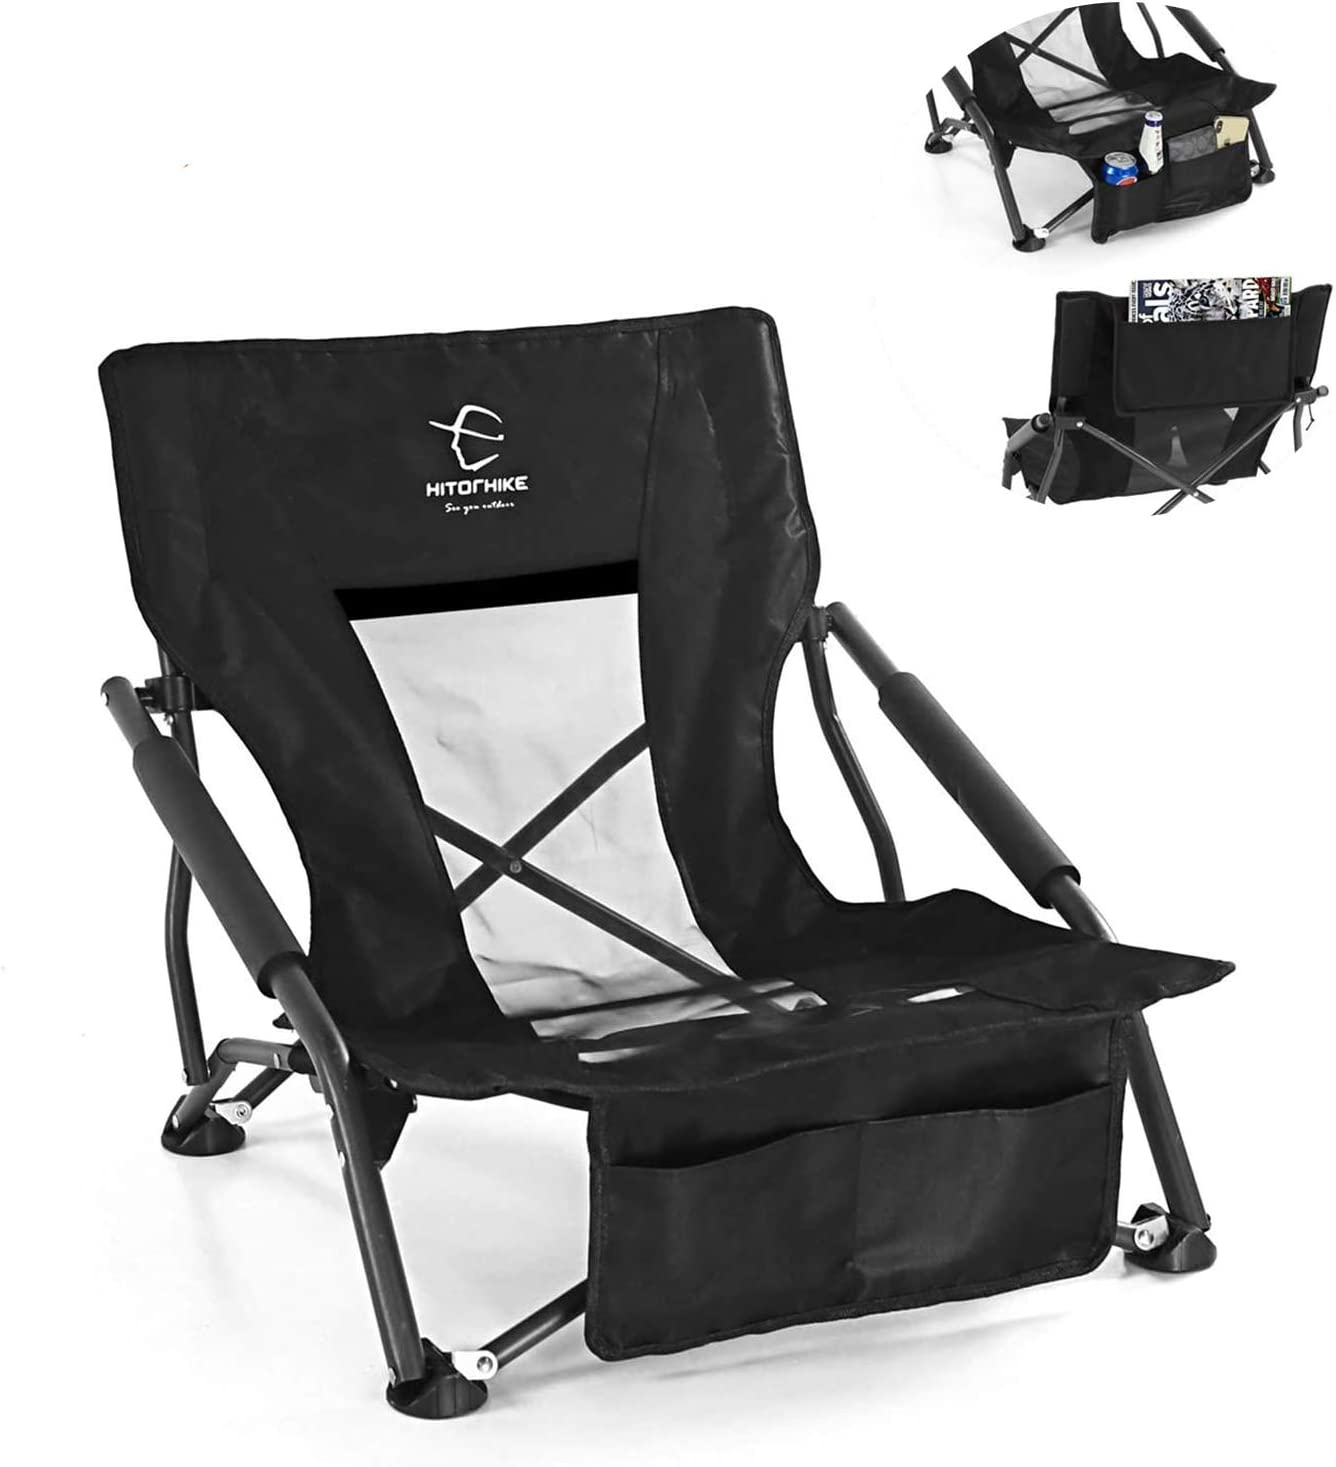 HITORHIKE Low Sling Beach Camping Concert Folding Chair with Armrests and Breathable Nylon Mesh Back Compact and Sturdy Chair